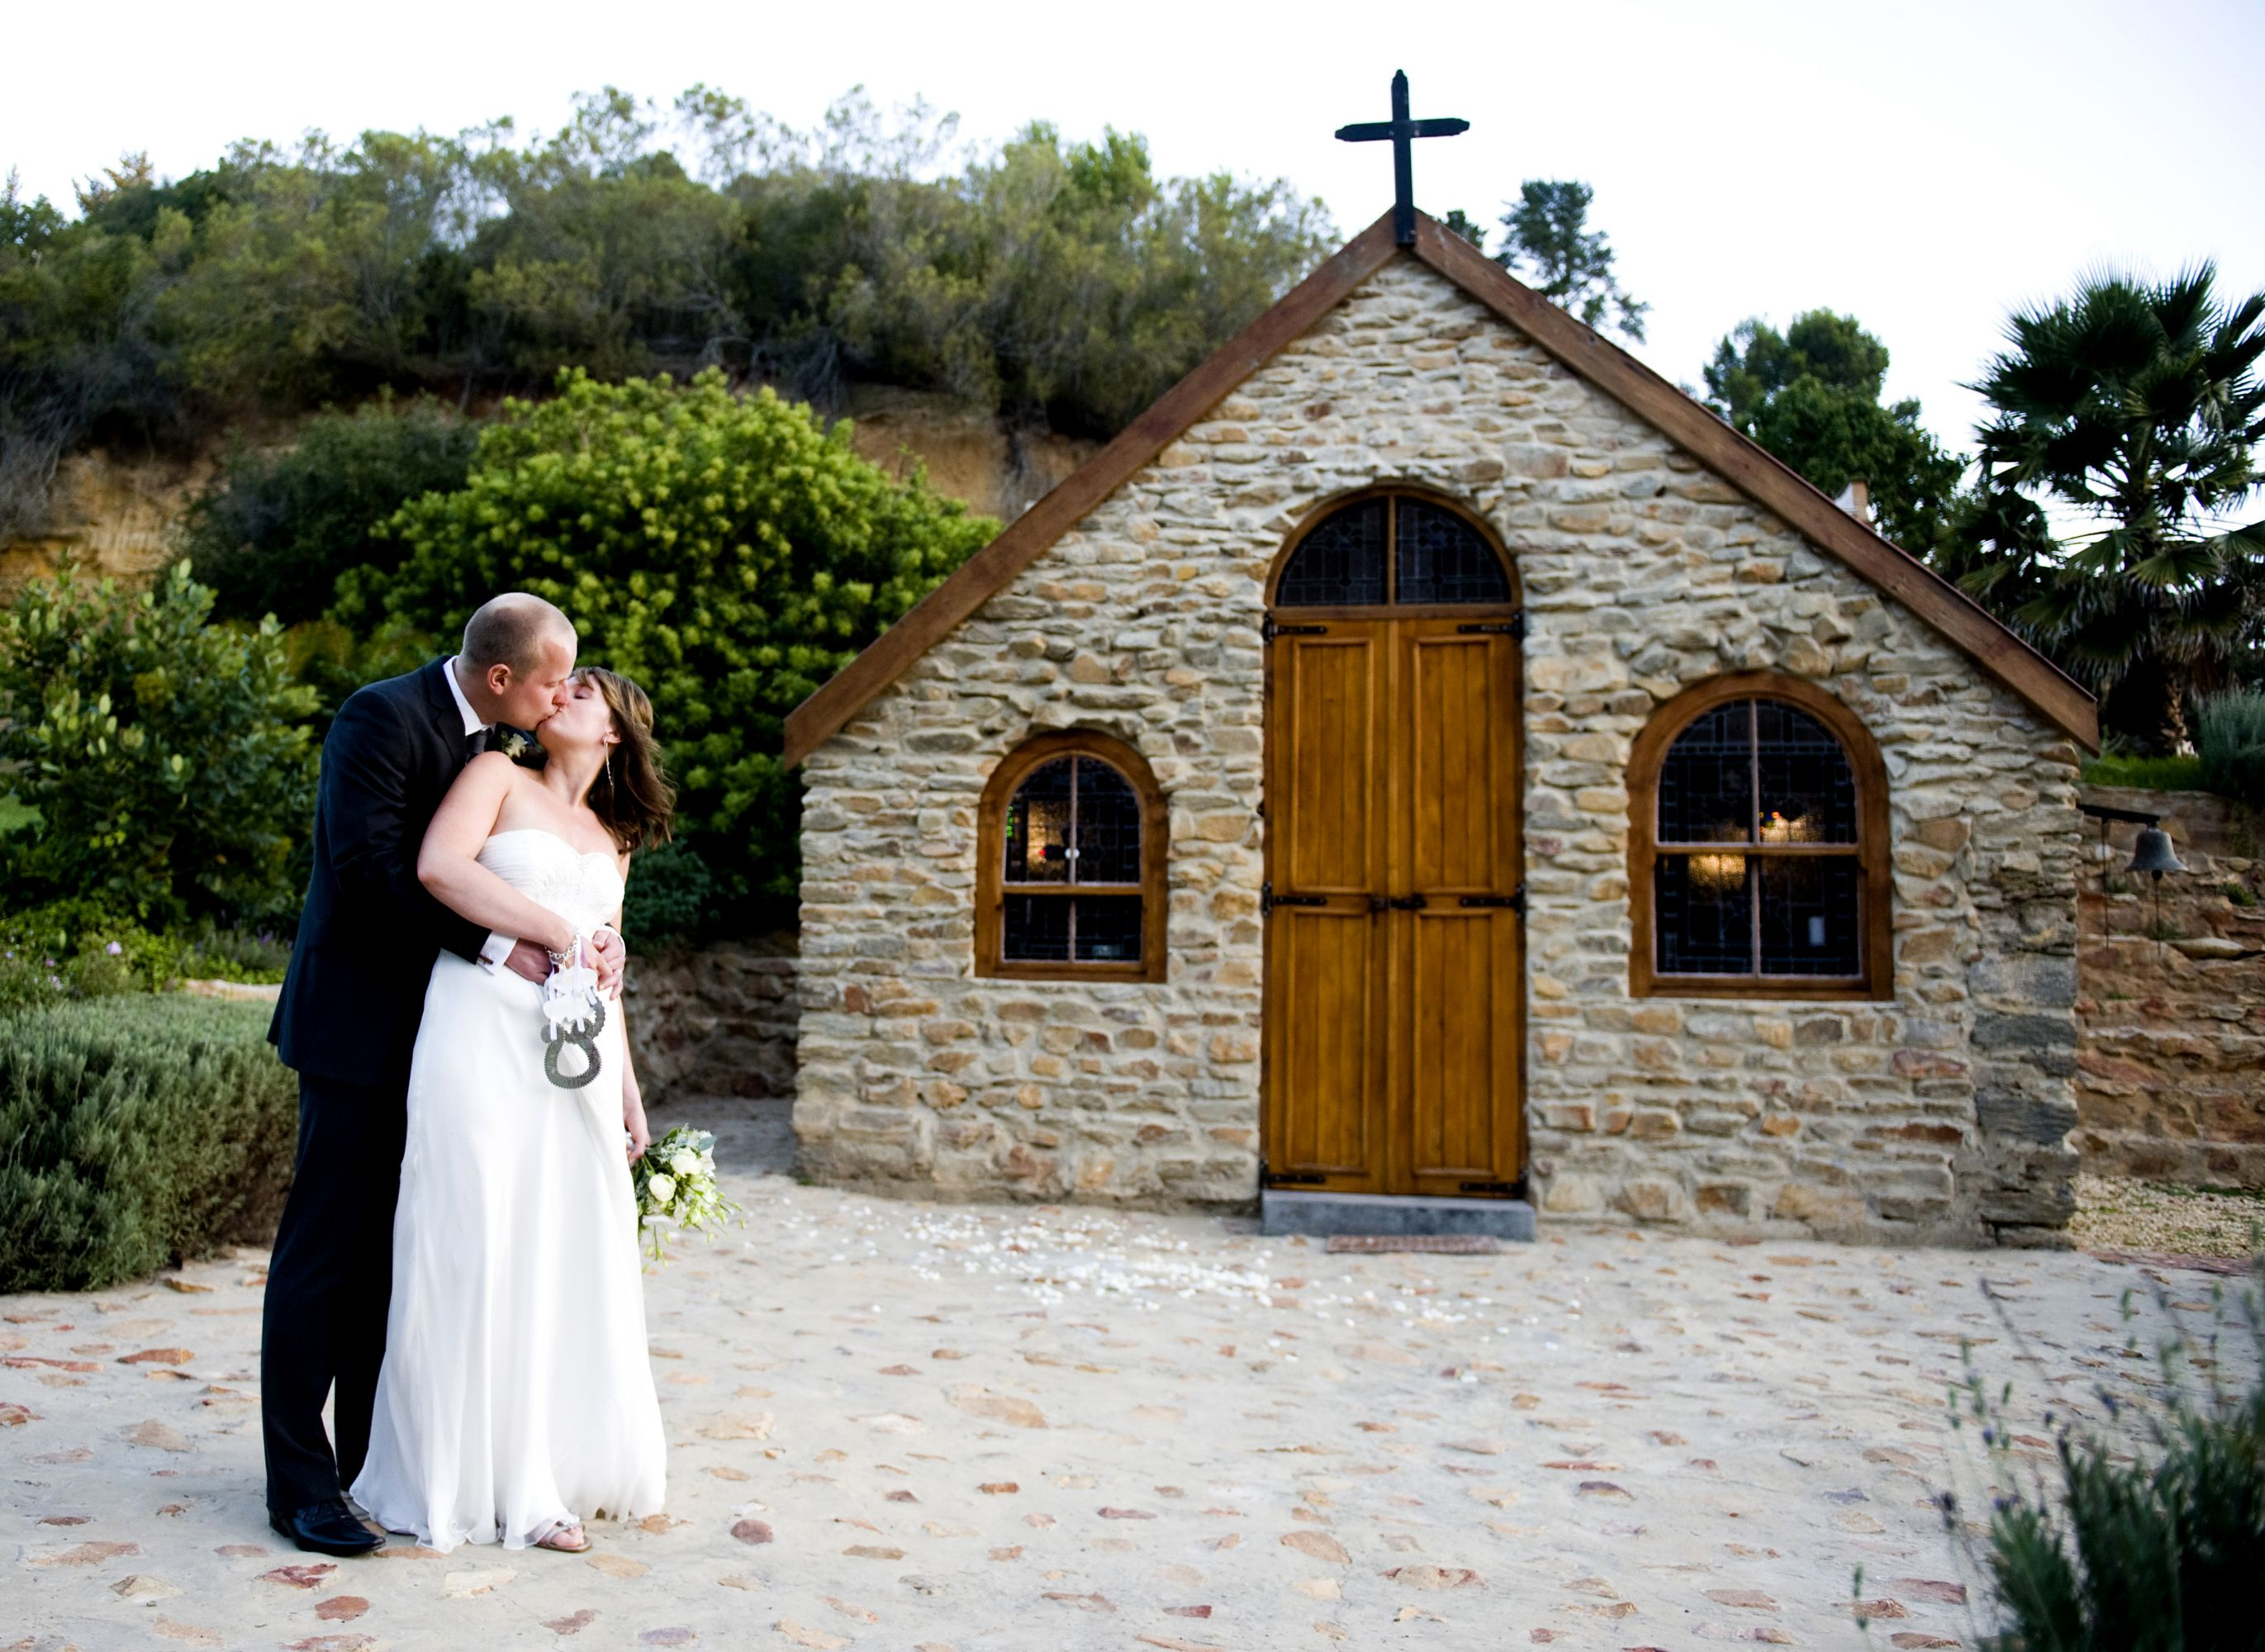 intimate wedding packages atlantga%0A small chapels   Wedding at The Old Chapel